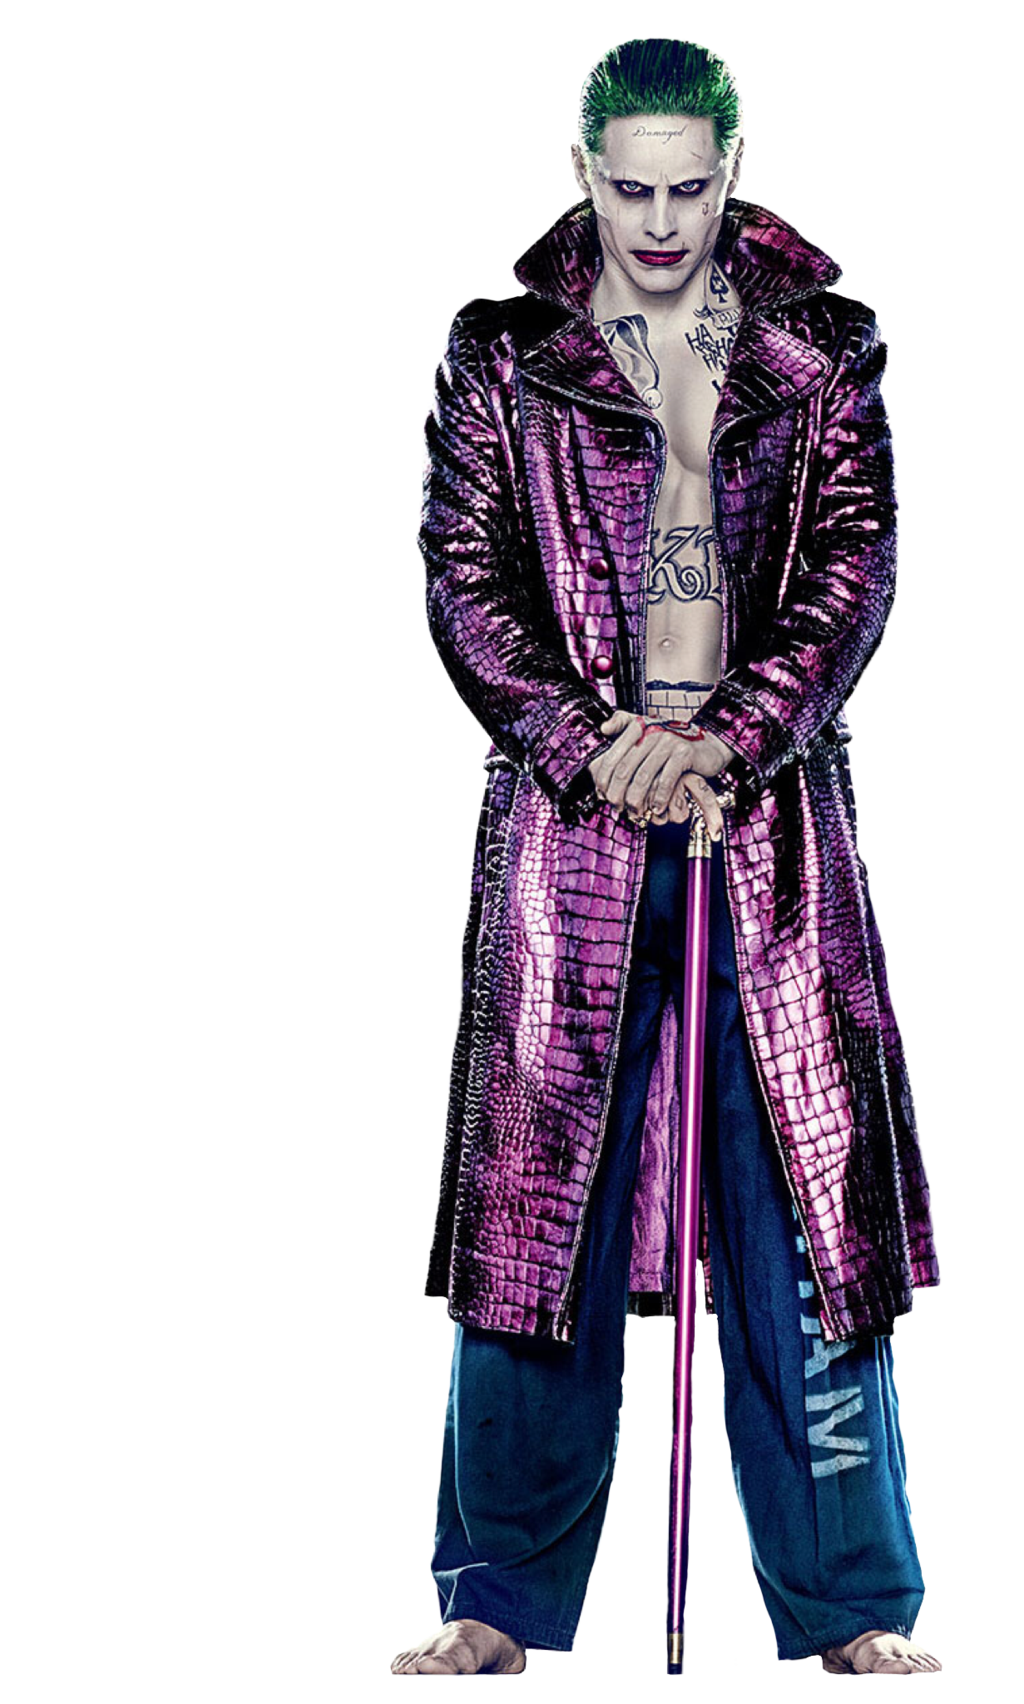 . PlusPng.com The Joker PNG #1 by Anna-x-Anarchy - Joker PNG